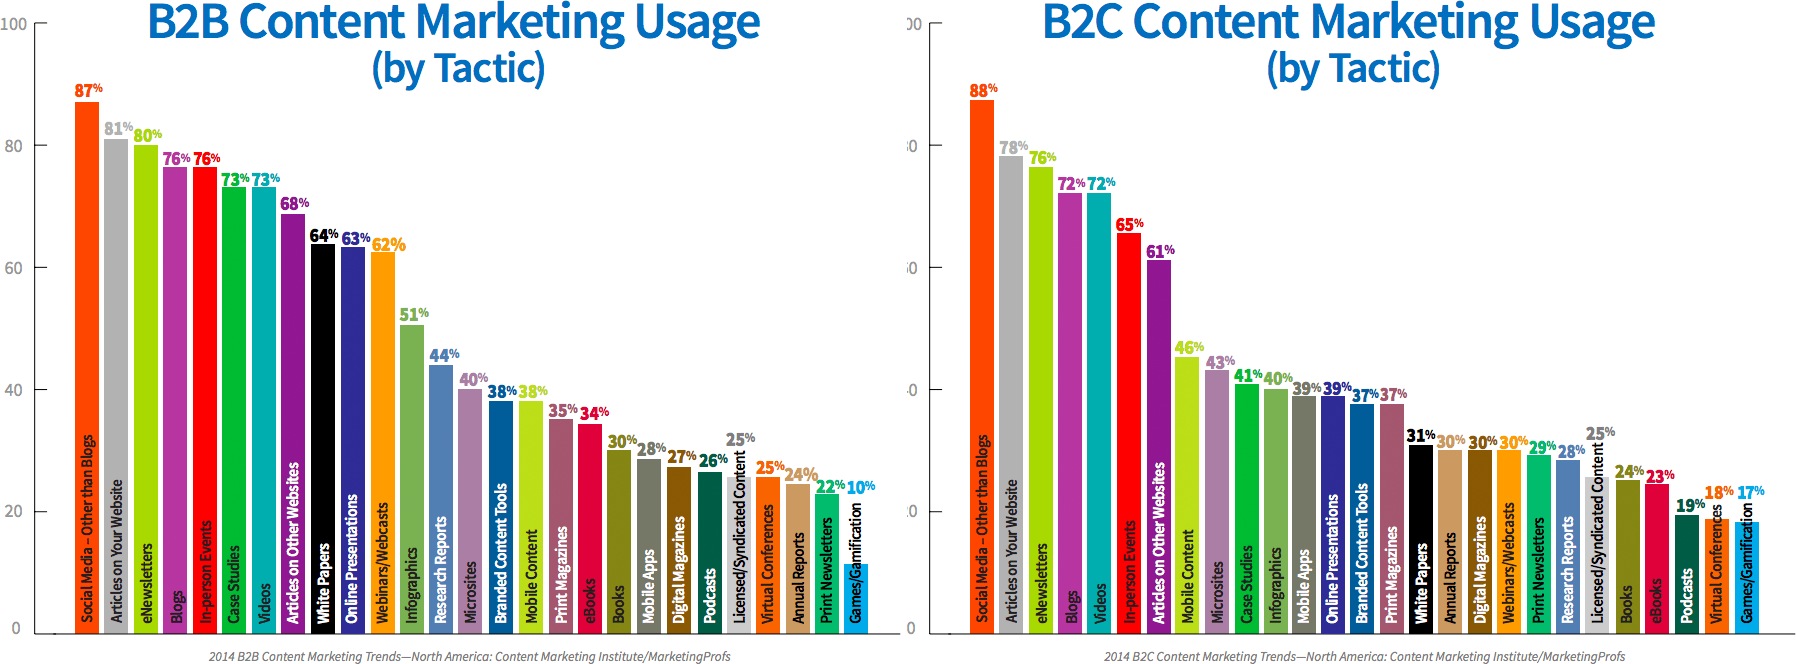 Maximizing Social Reach: The Best Time To Publish A Blog Post CM Usage